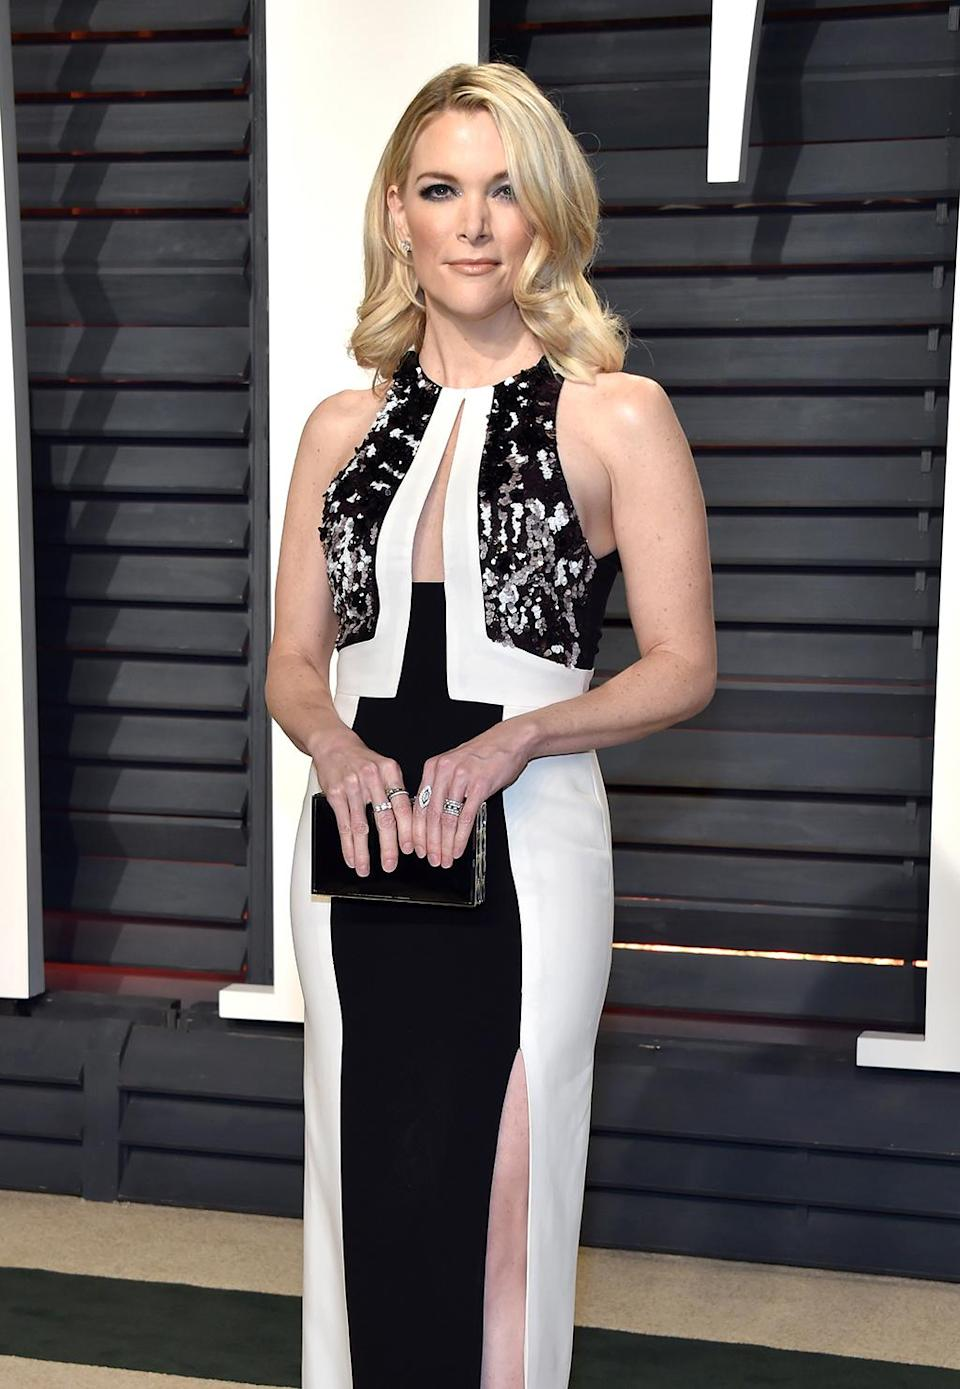 <p>TV personality Megyn Kelly attends the 2017 Vanity Fair Oscar Party hosted by Graydon Carter at Wallis Annenberg Center for the Performing Arts on February 26, 2017 in Beverly Hills, California. (Photo by Pascal Le Segretain/Getty Images) </p>